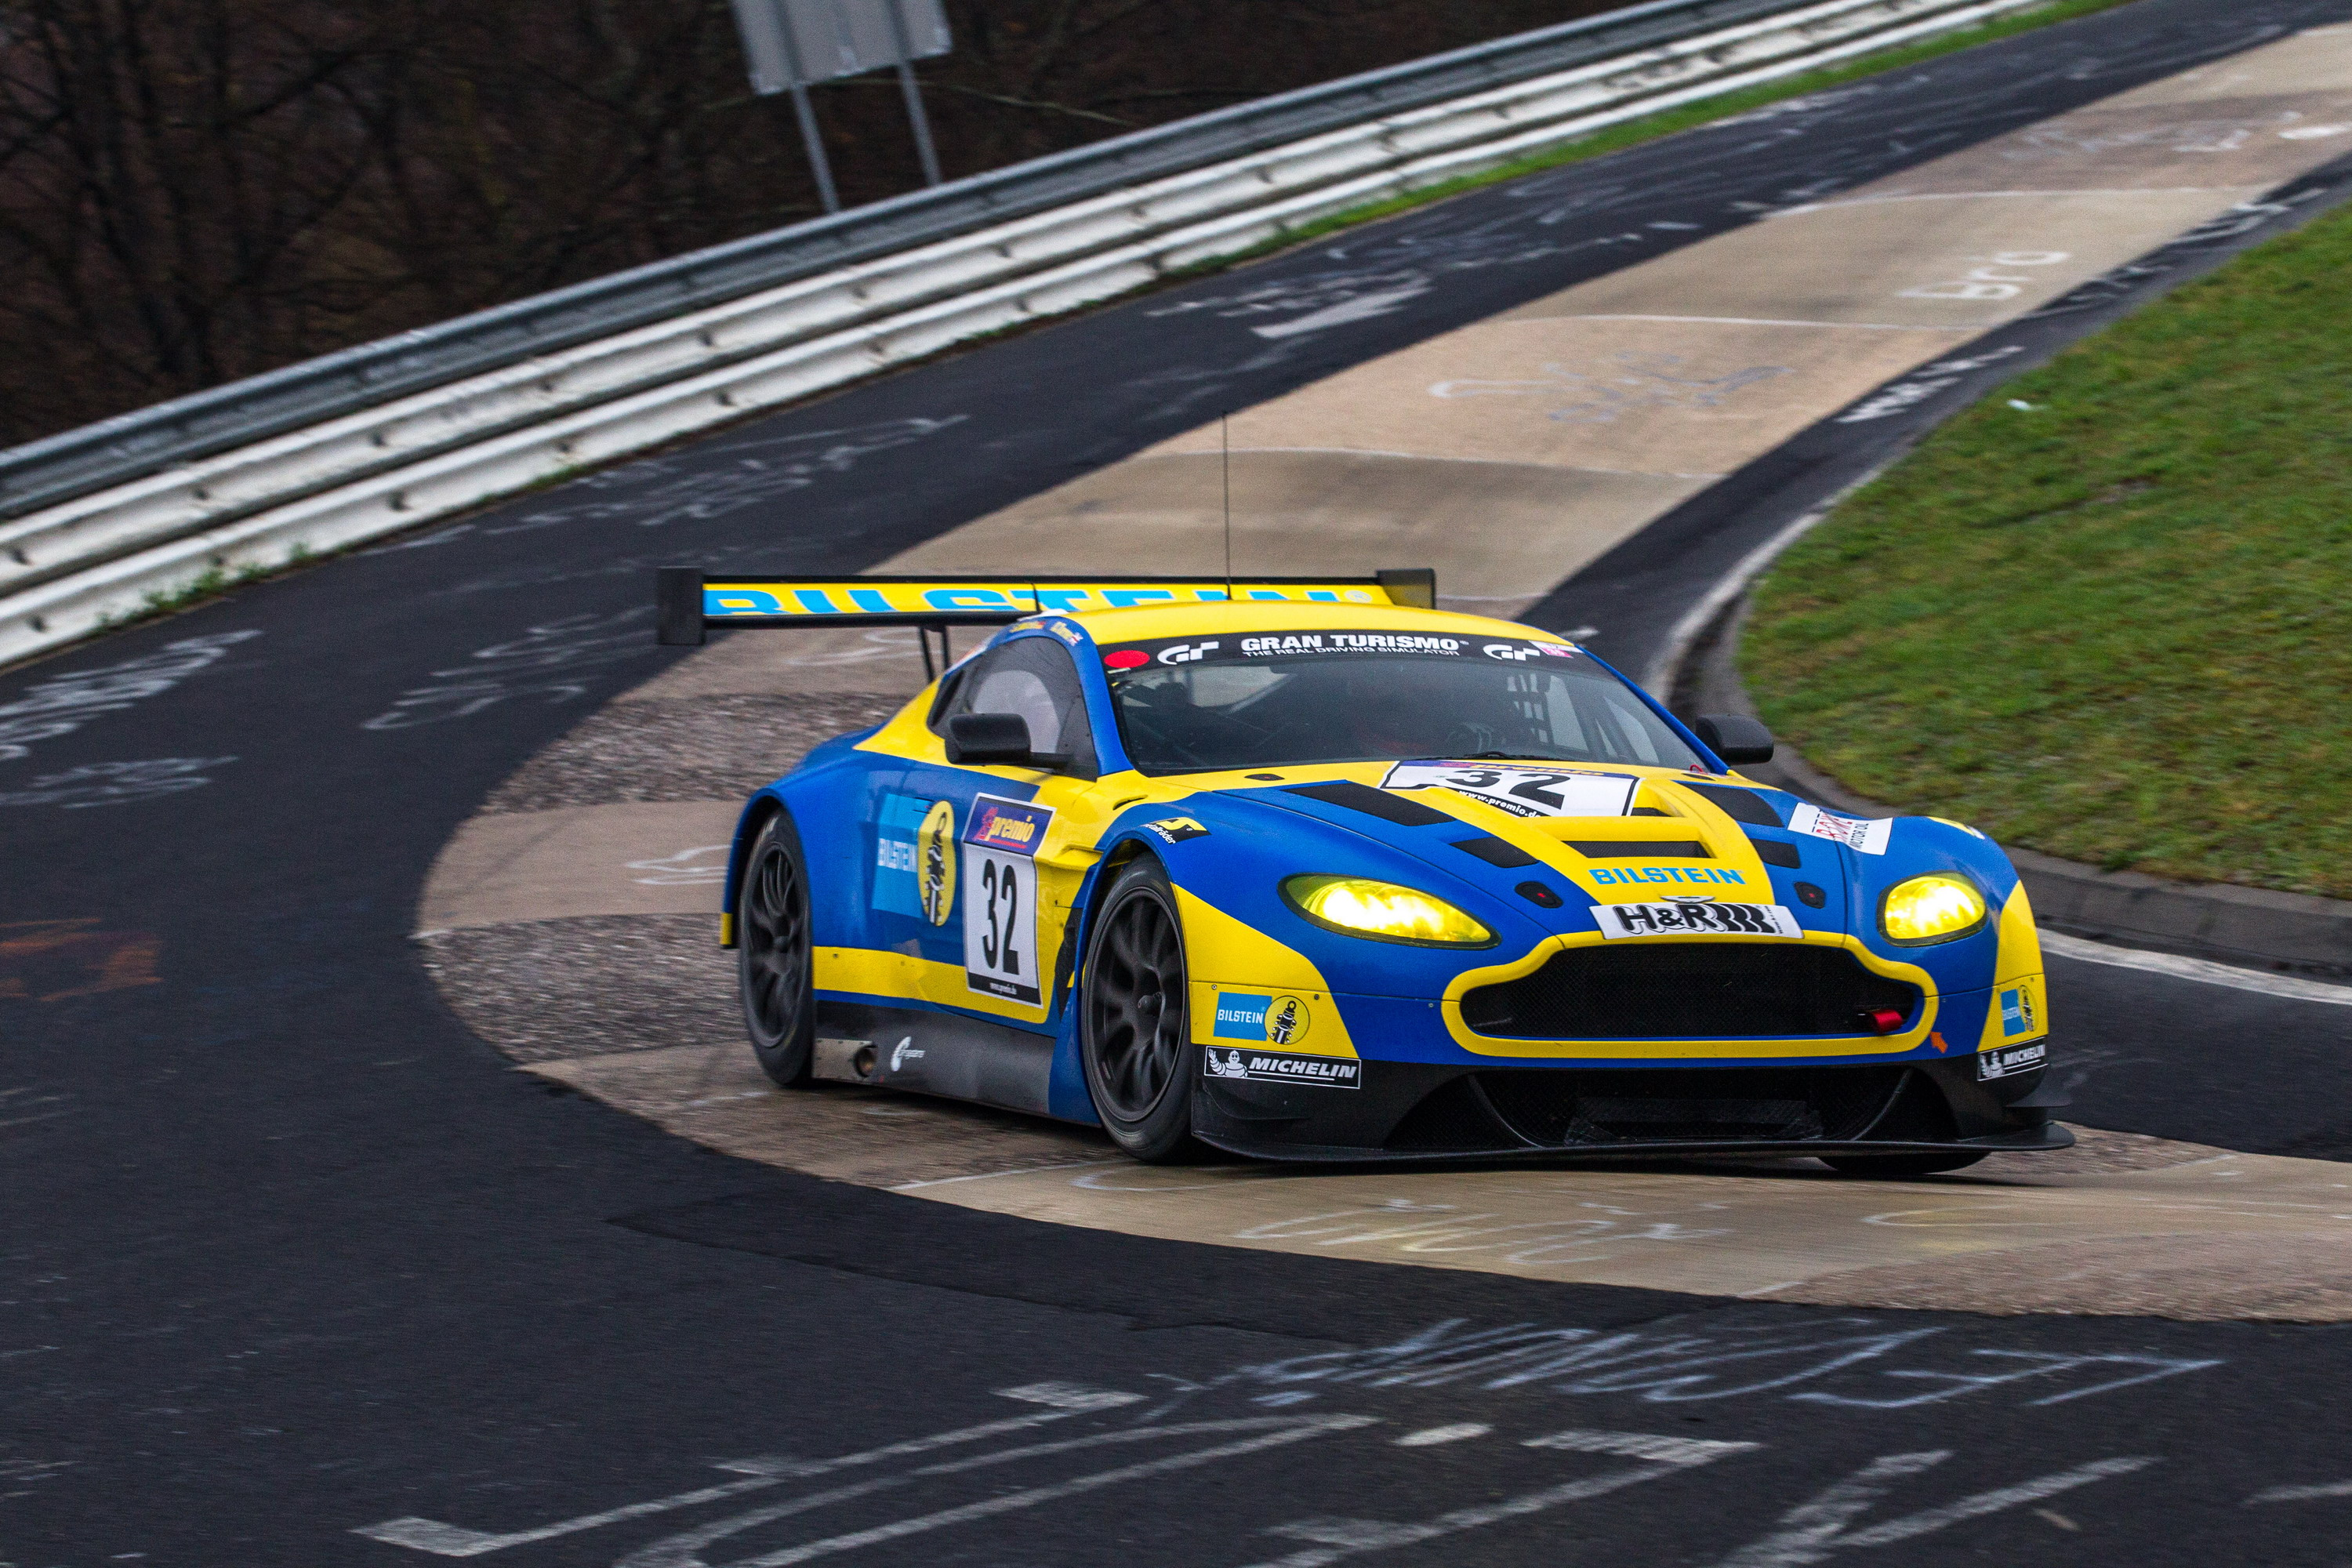 2013 Aston Martin V12 Vantage Gt3 Bilstein Top Speed